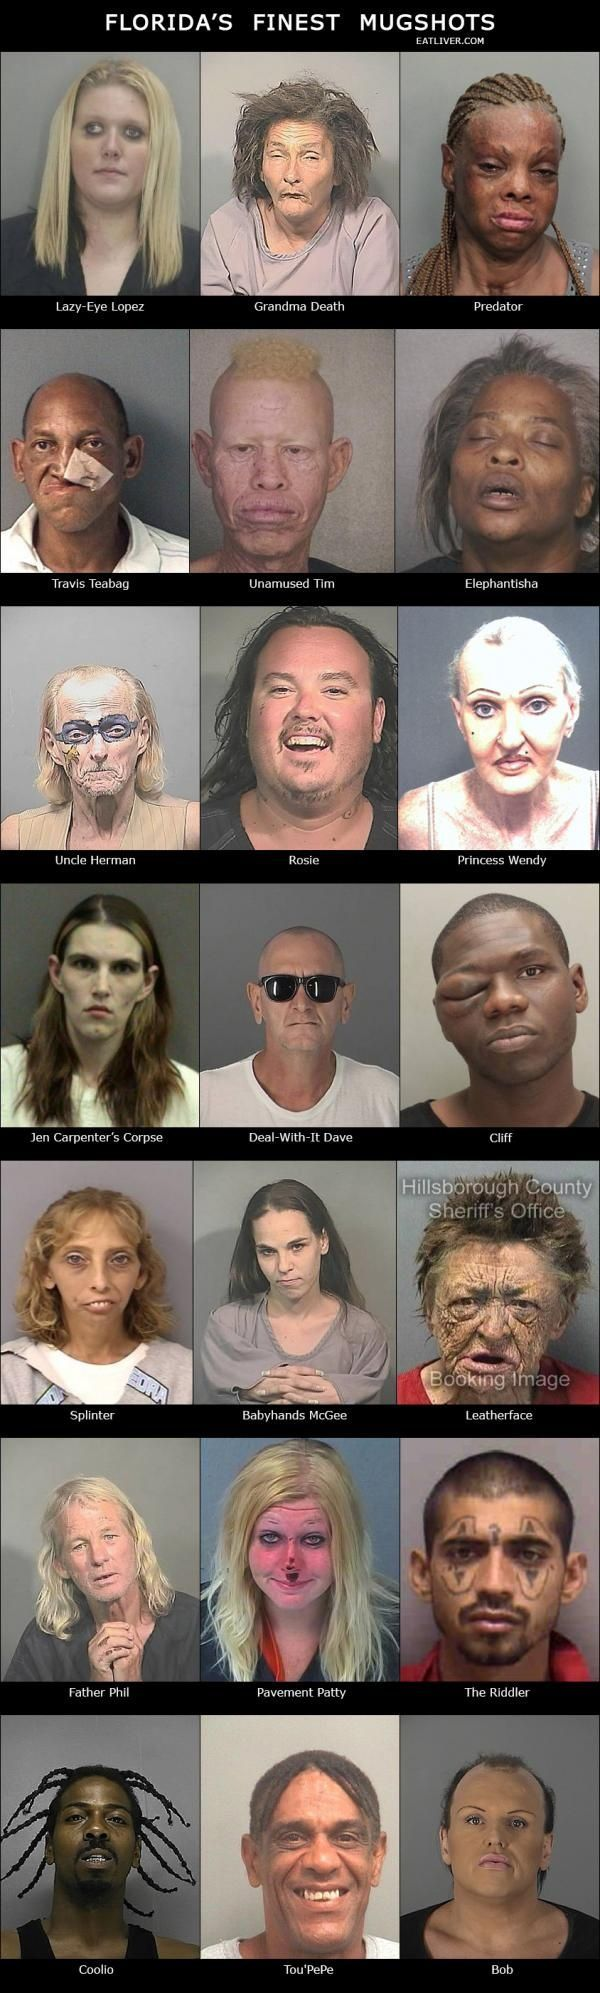 Splinter!  AAAHHHHAHAHAHAHAHAHAHAHAHAHAHAHHAH  Florida's Finest Mugshots - Seriously. | See more about florida.